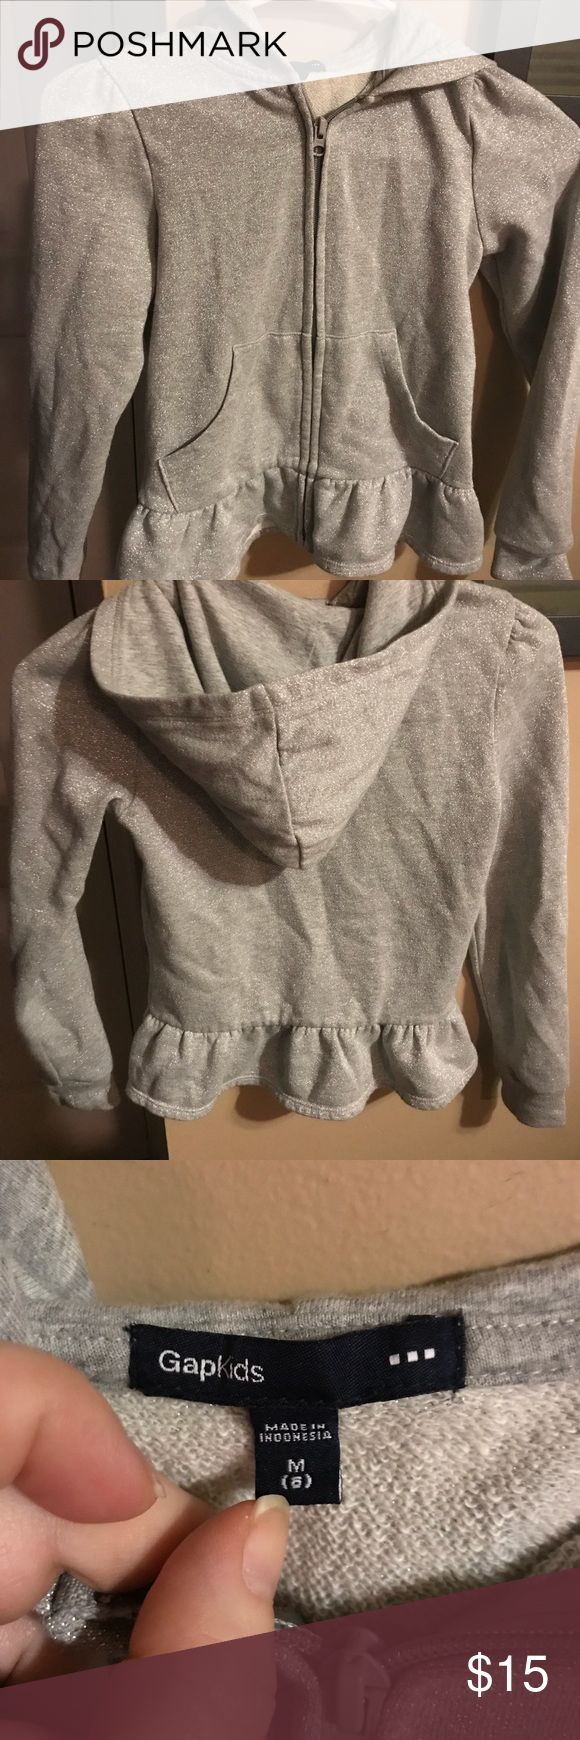 Hoodie Girl's sparkly silver hoodie with ruffle detail at hem in like new condition! GAP Shirts & Tops Sweatshirts & Hoodies